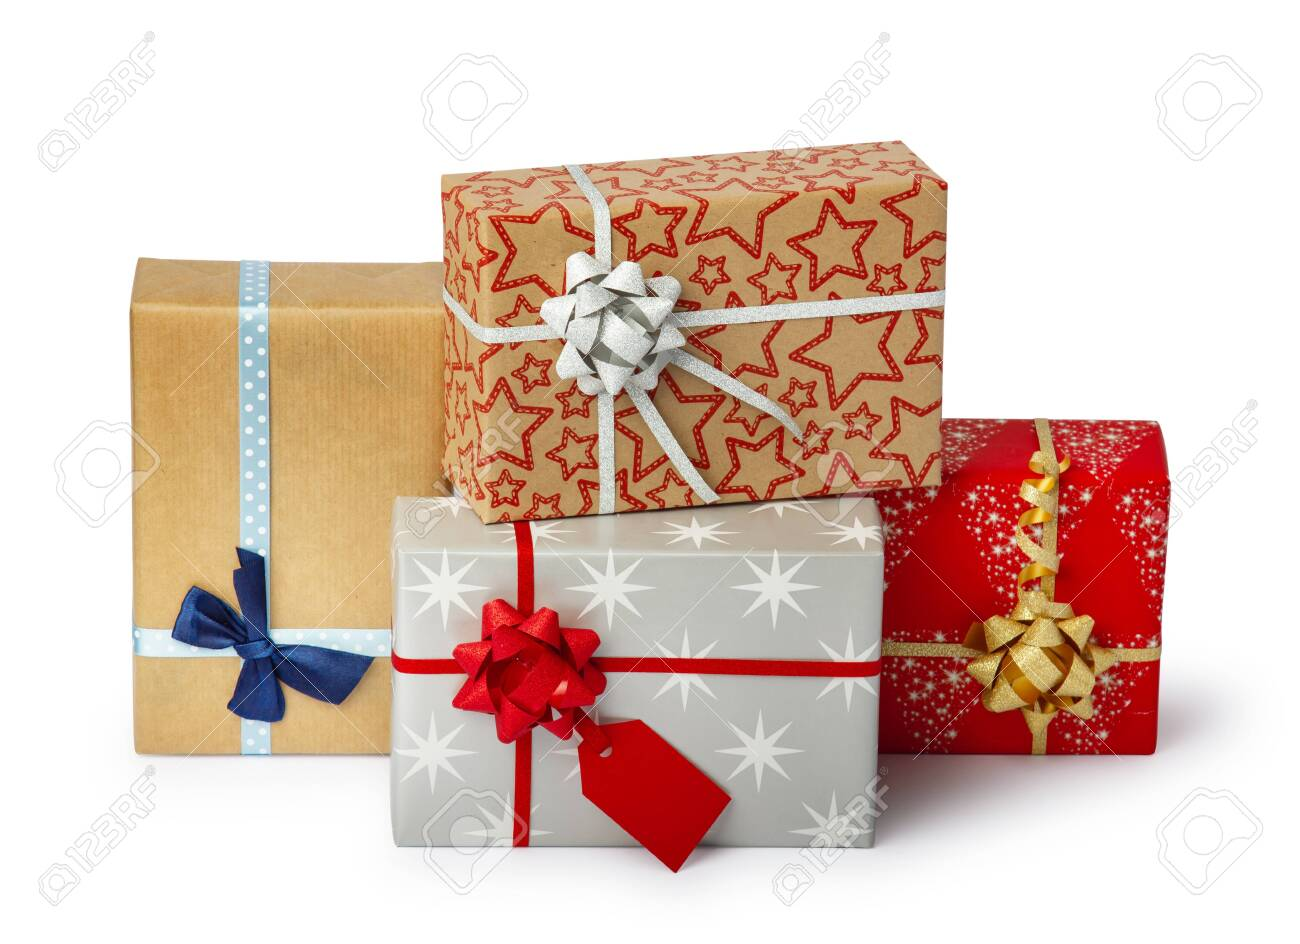 Set of colorful gift box isolated on white background. Path included. - 141091088